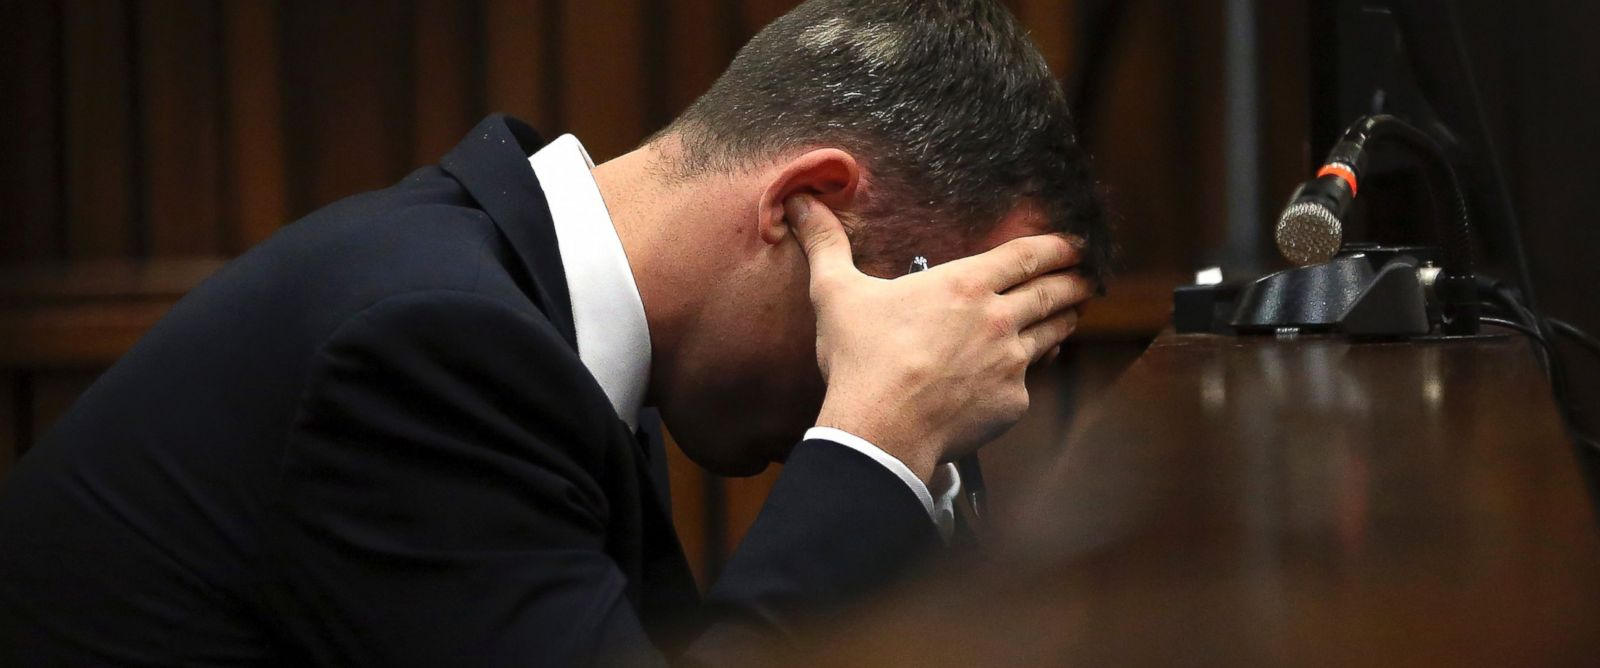 PHOTO: Oscar Pistorius, cradles his head in his hands as he listens to ballistic evidence being given in the court during his murder trial in Pretoria, South Africa, March 19, 2014.